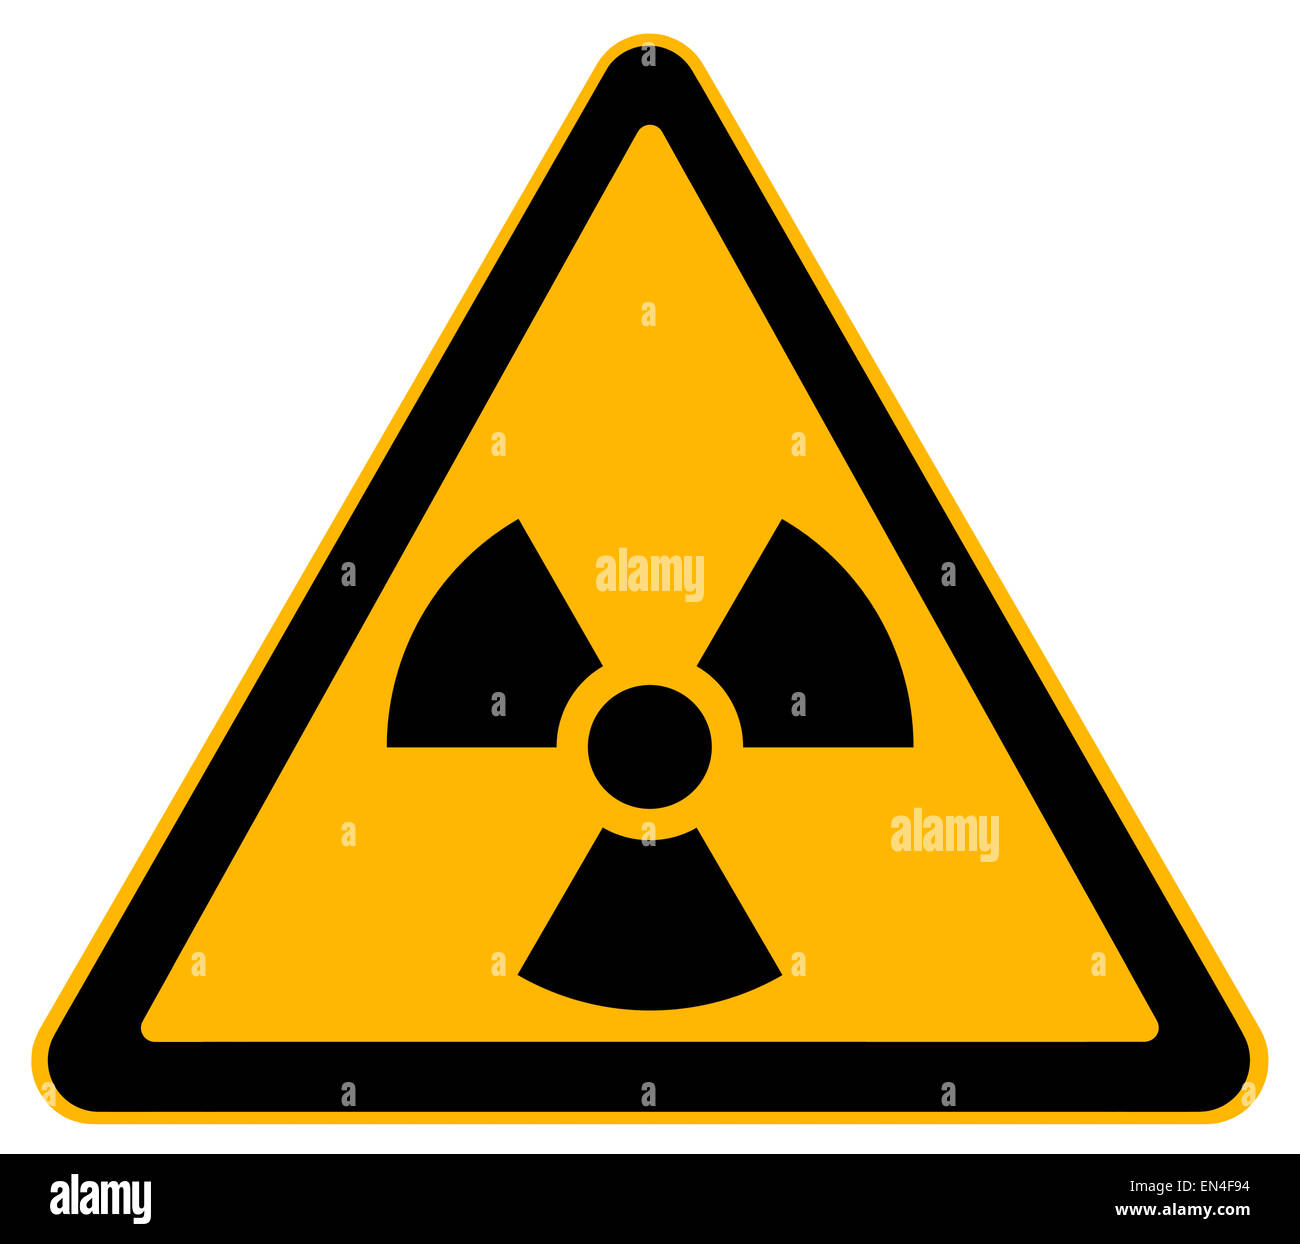 Yellow Triangle Nuclear Warning Sign Isolated on White Background. - Stock Image